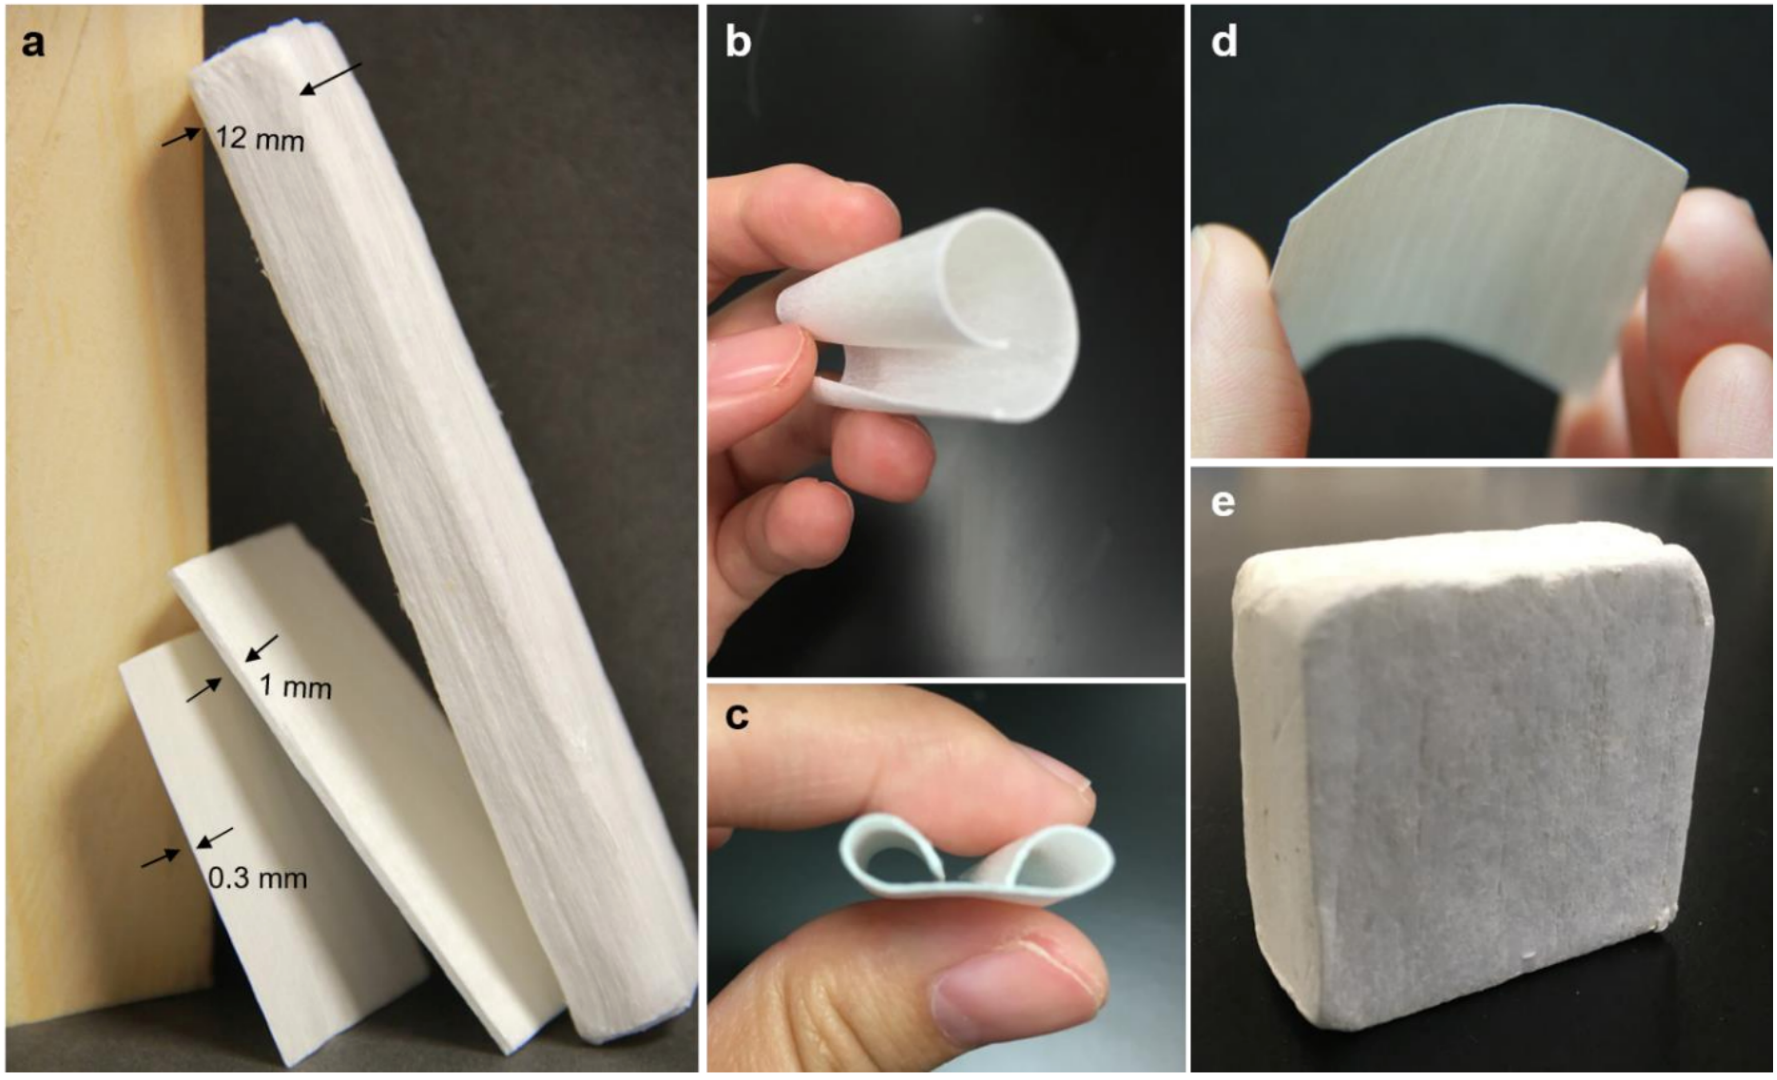 Bleached-white nanowood material promises exceptional